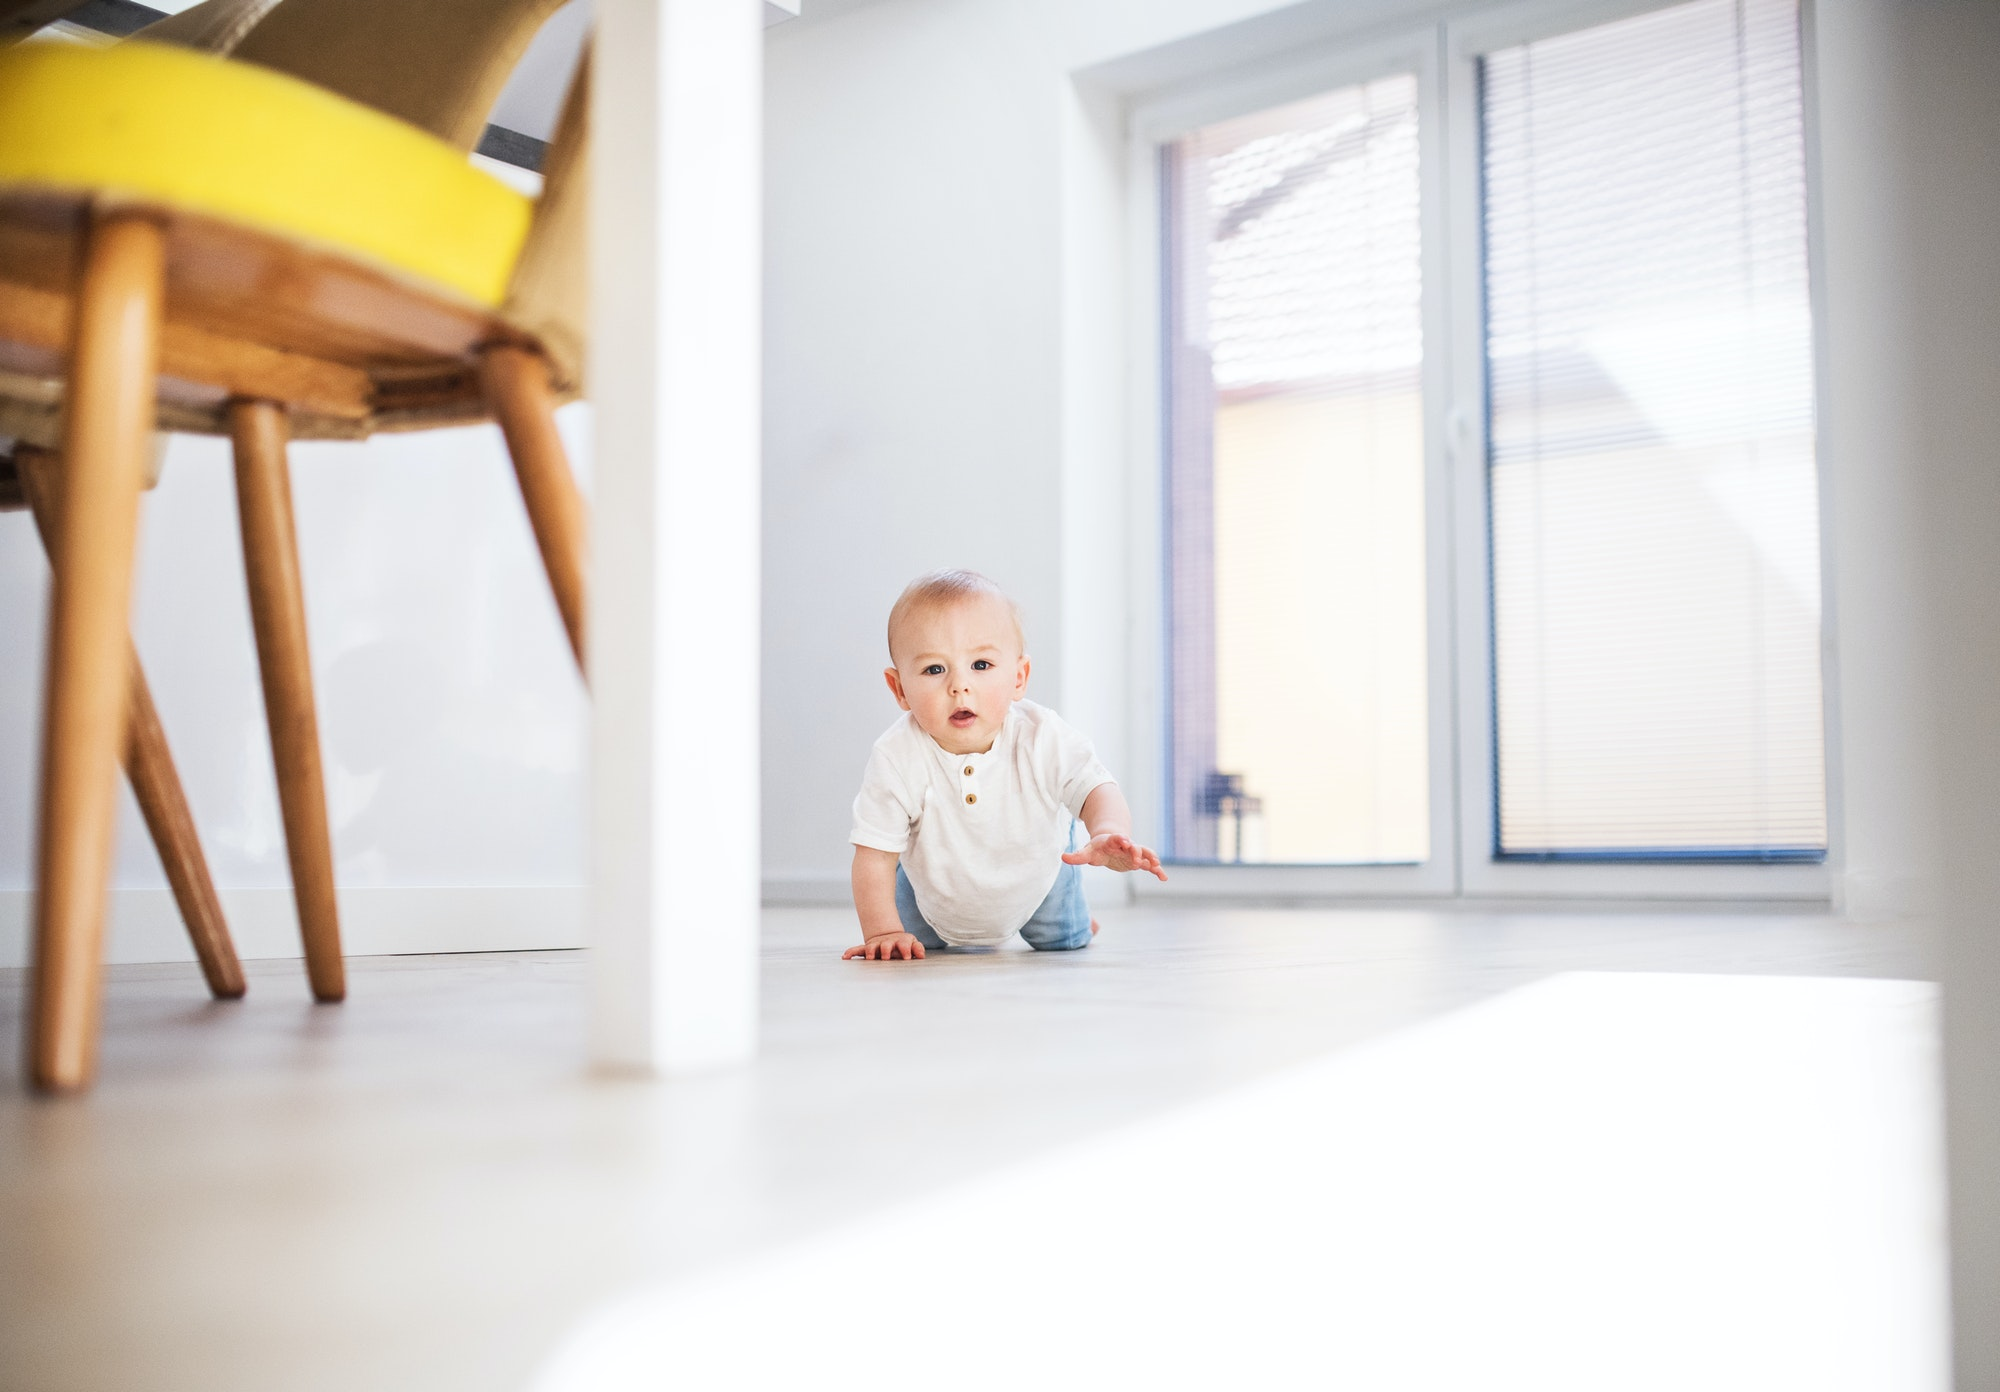 A baby boy crawling on the floor at home.